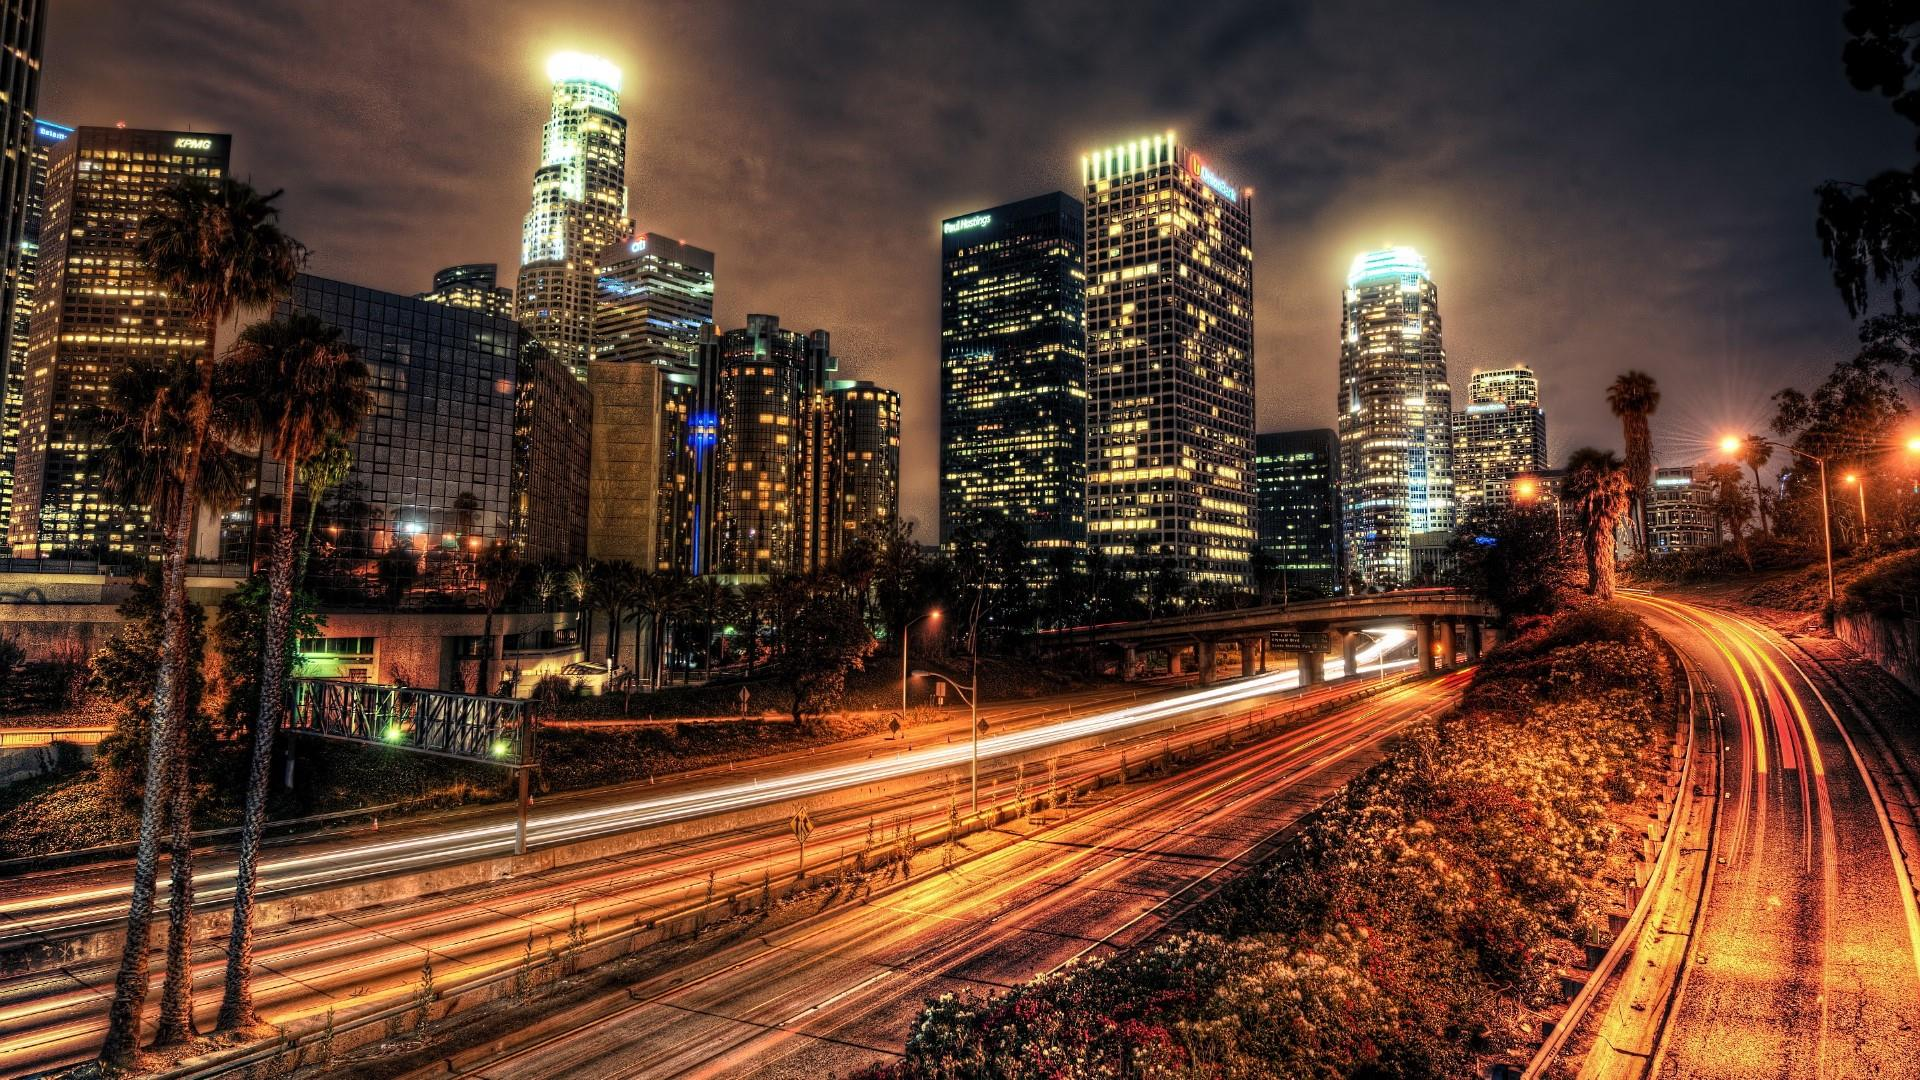 Los Angeles at night in motion  wallpaper